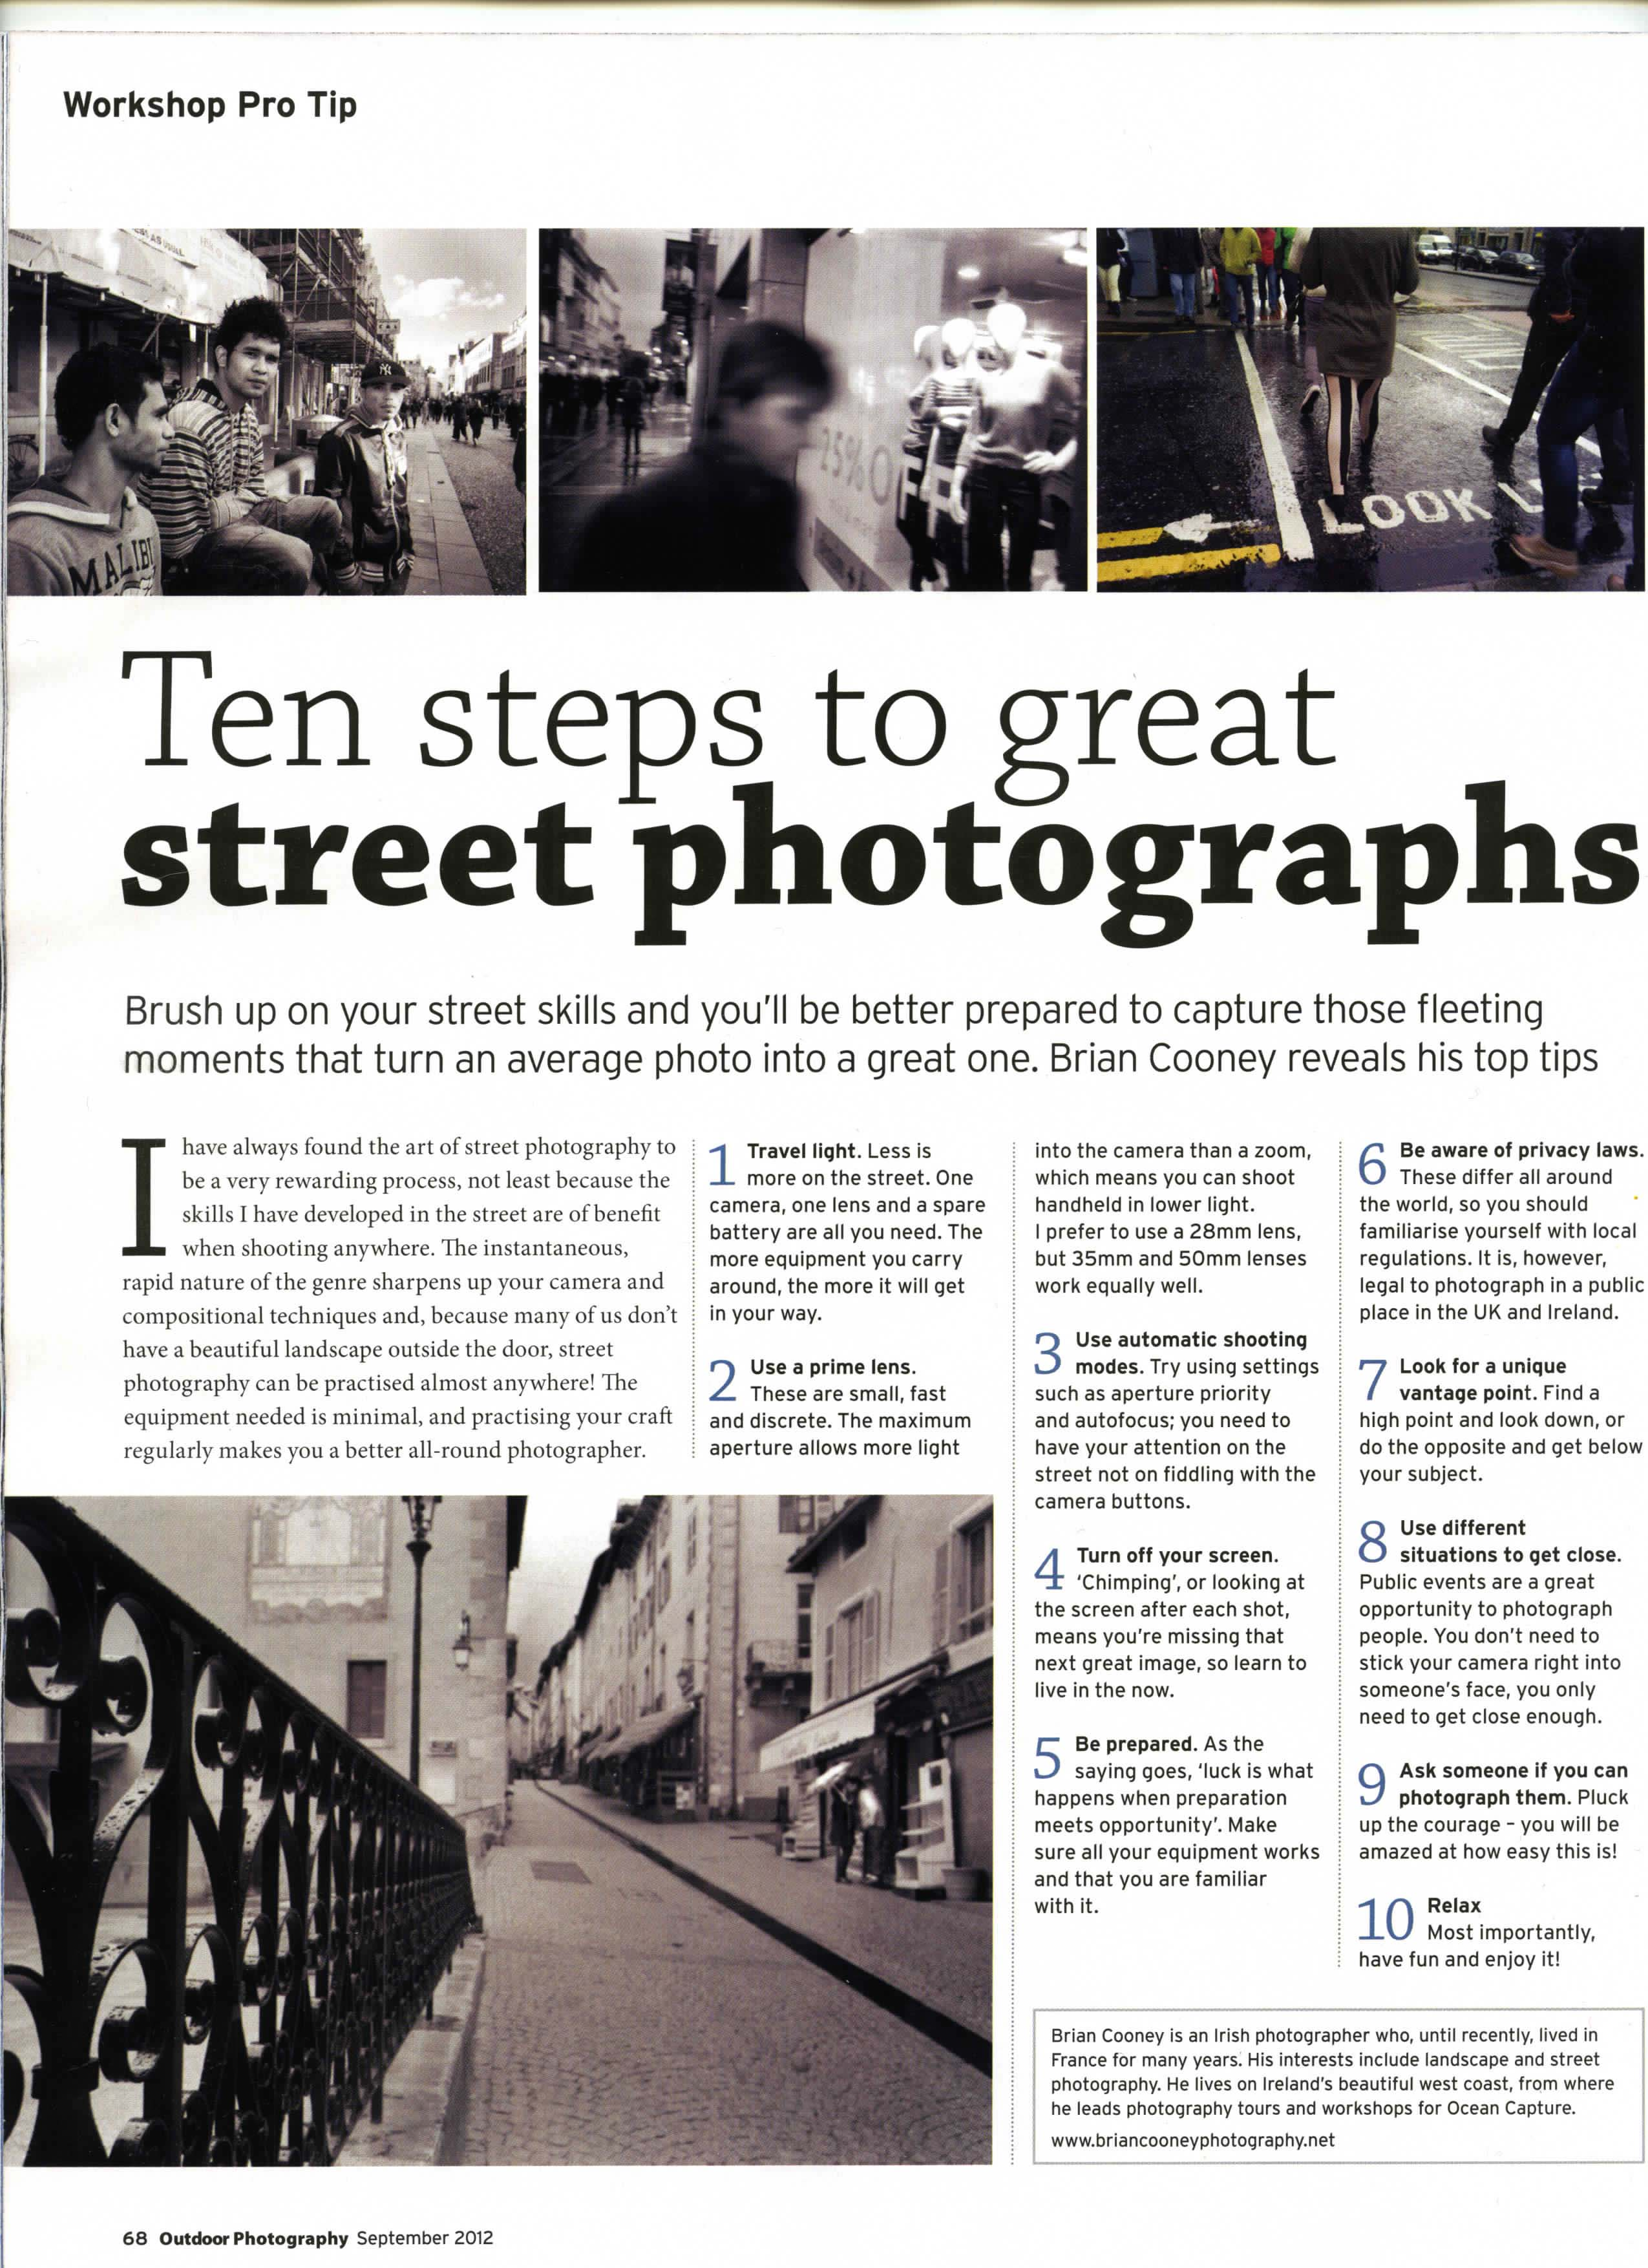 news article content concerning photography